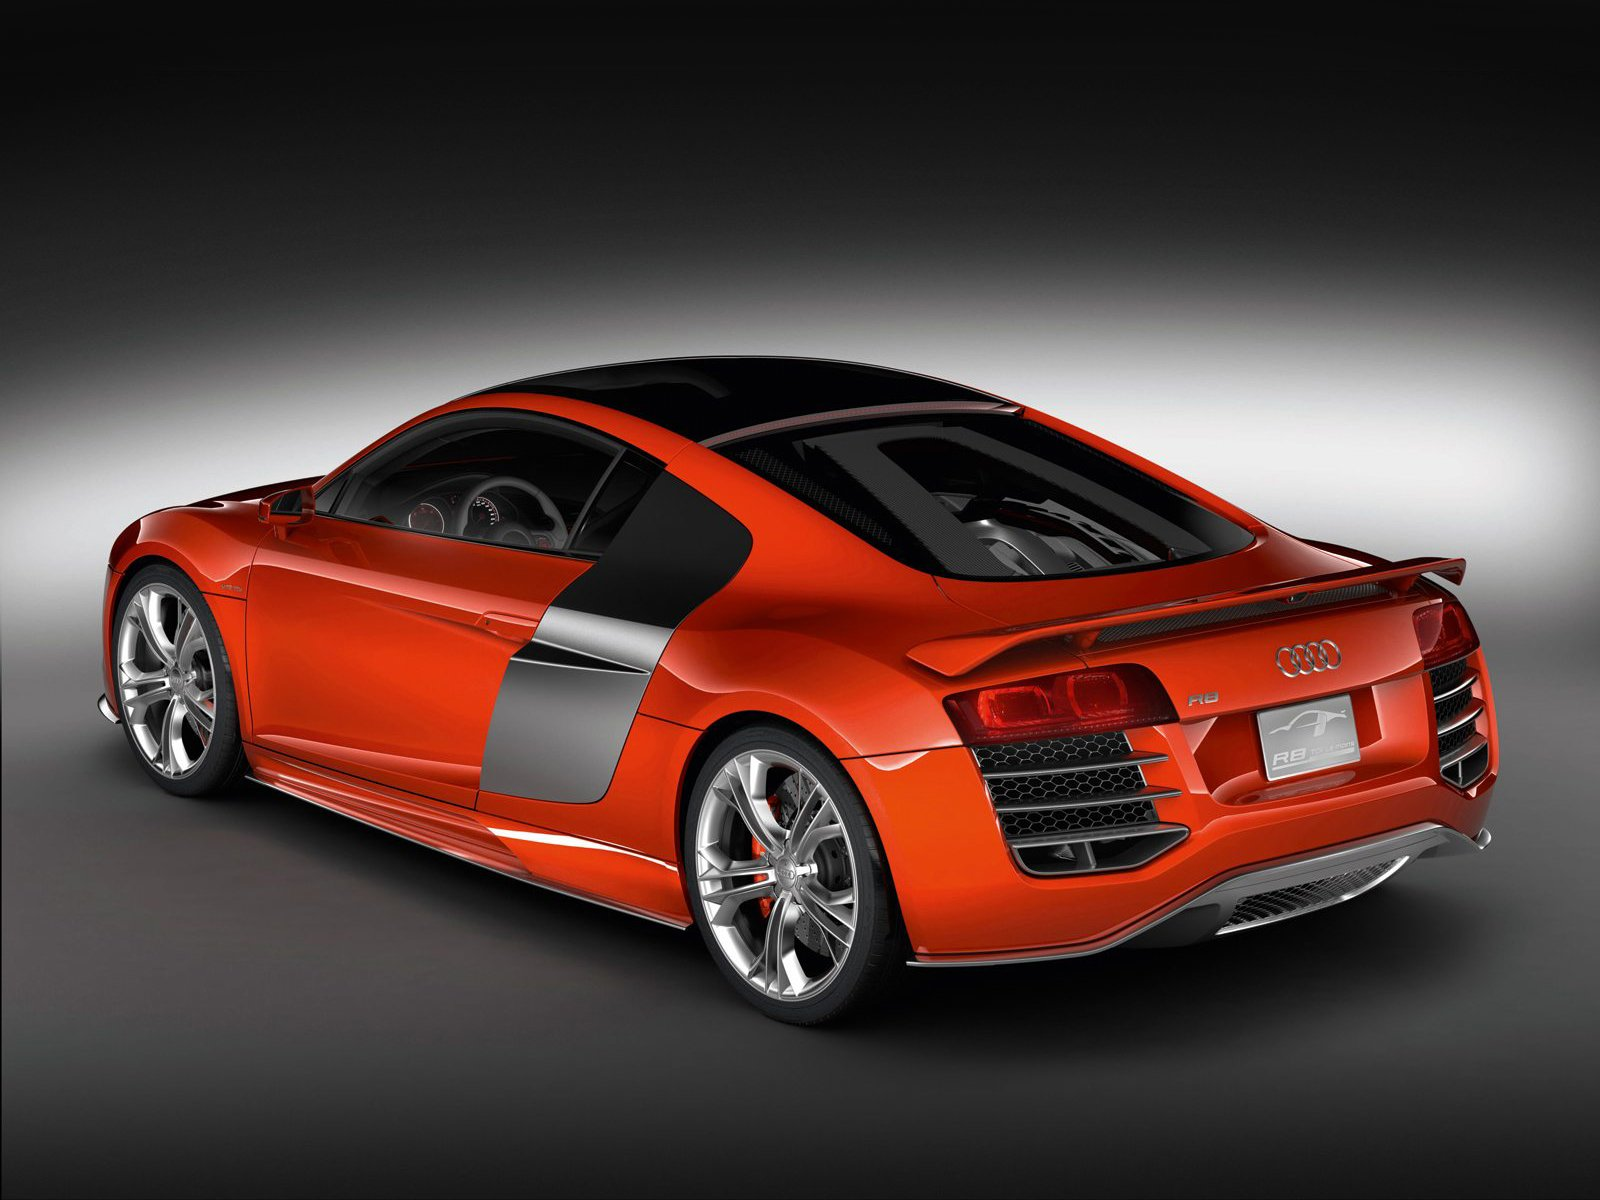 Audi R8 Le Mans Concept Wallpaper And Background Image 1600x1200 Id 476171 Wallpaper Abyss